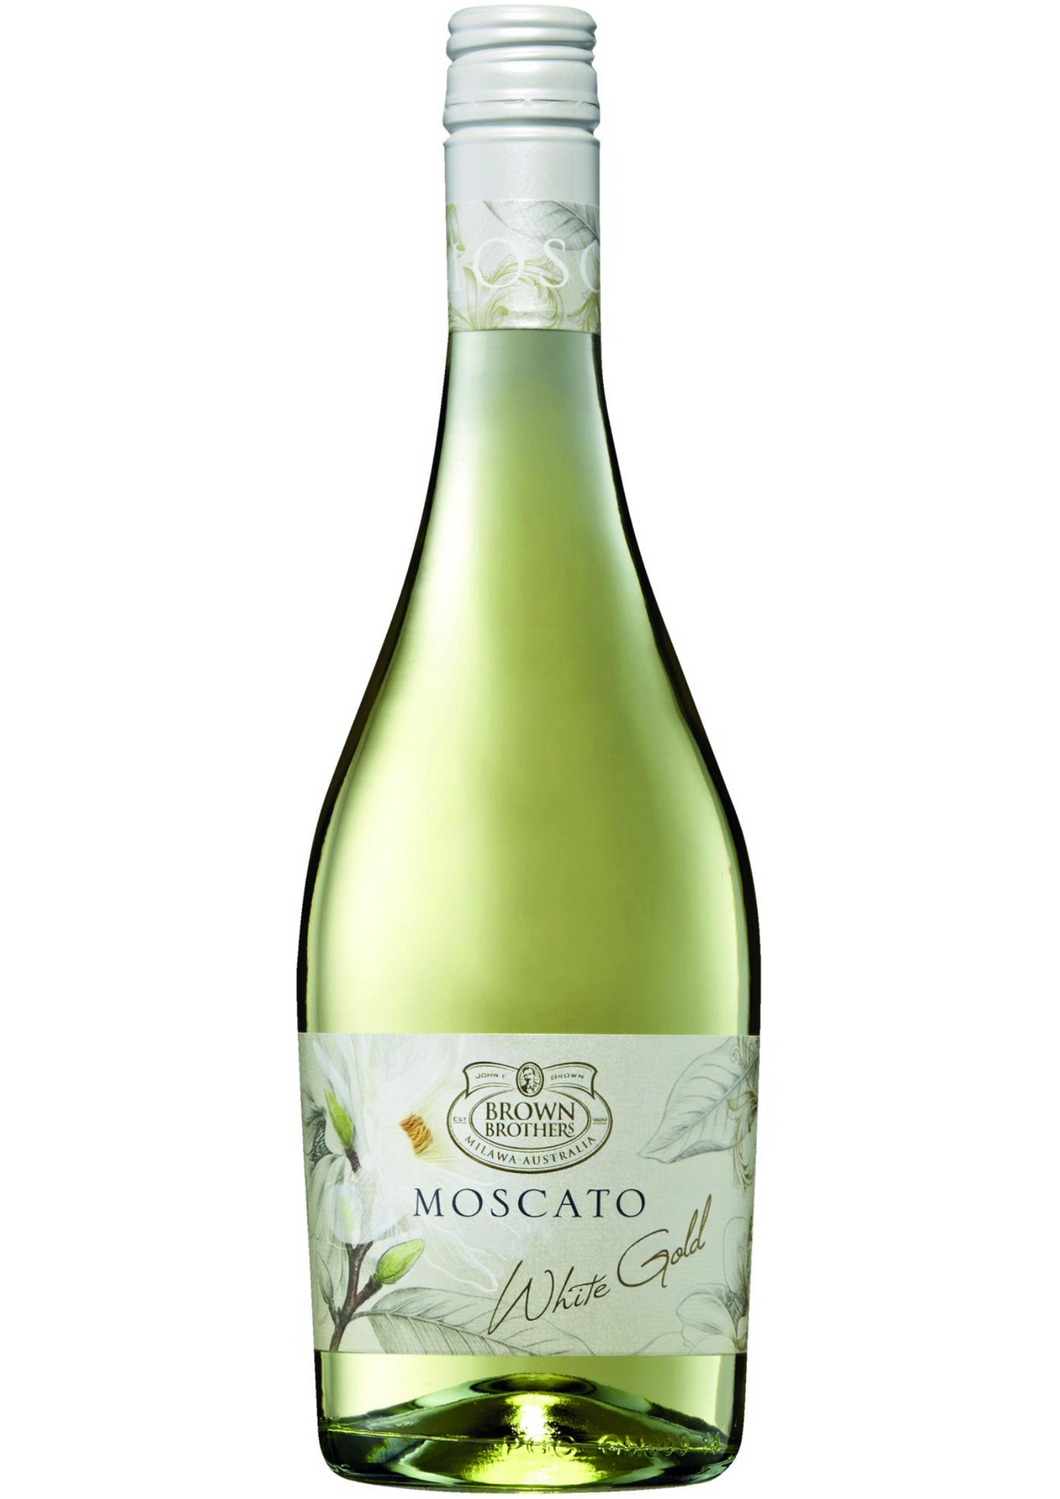 2015 MOSCATO WHITE GOLD VICTORIA, BROWN BROTHERS - Vine0nline